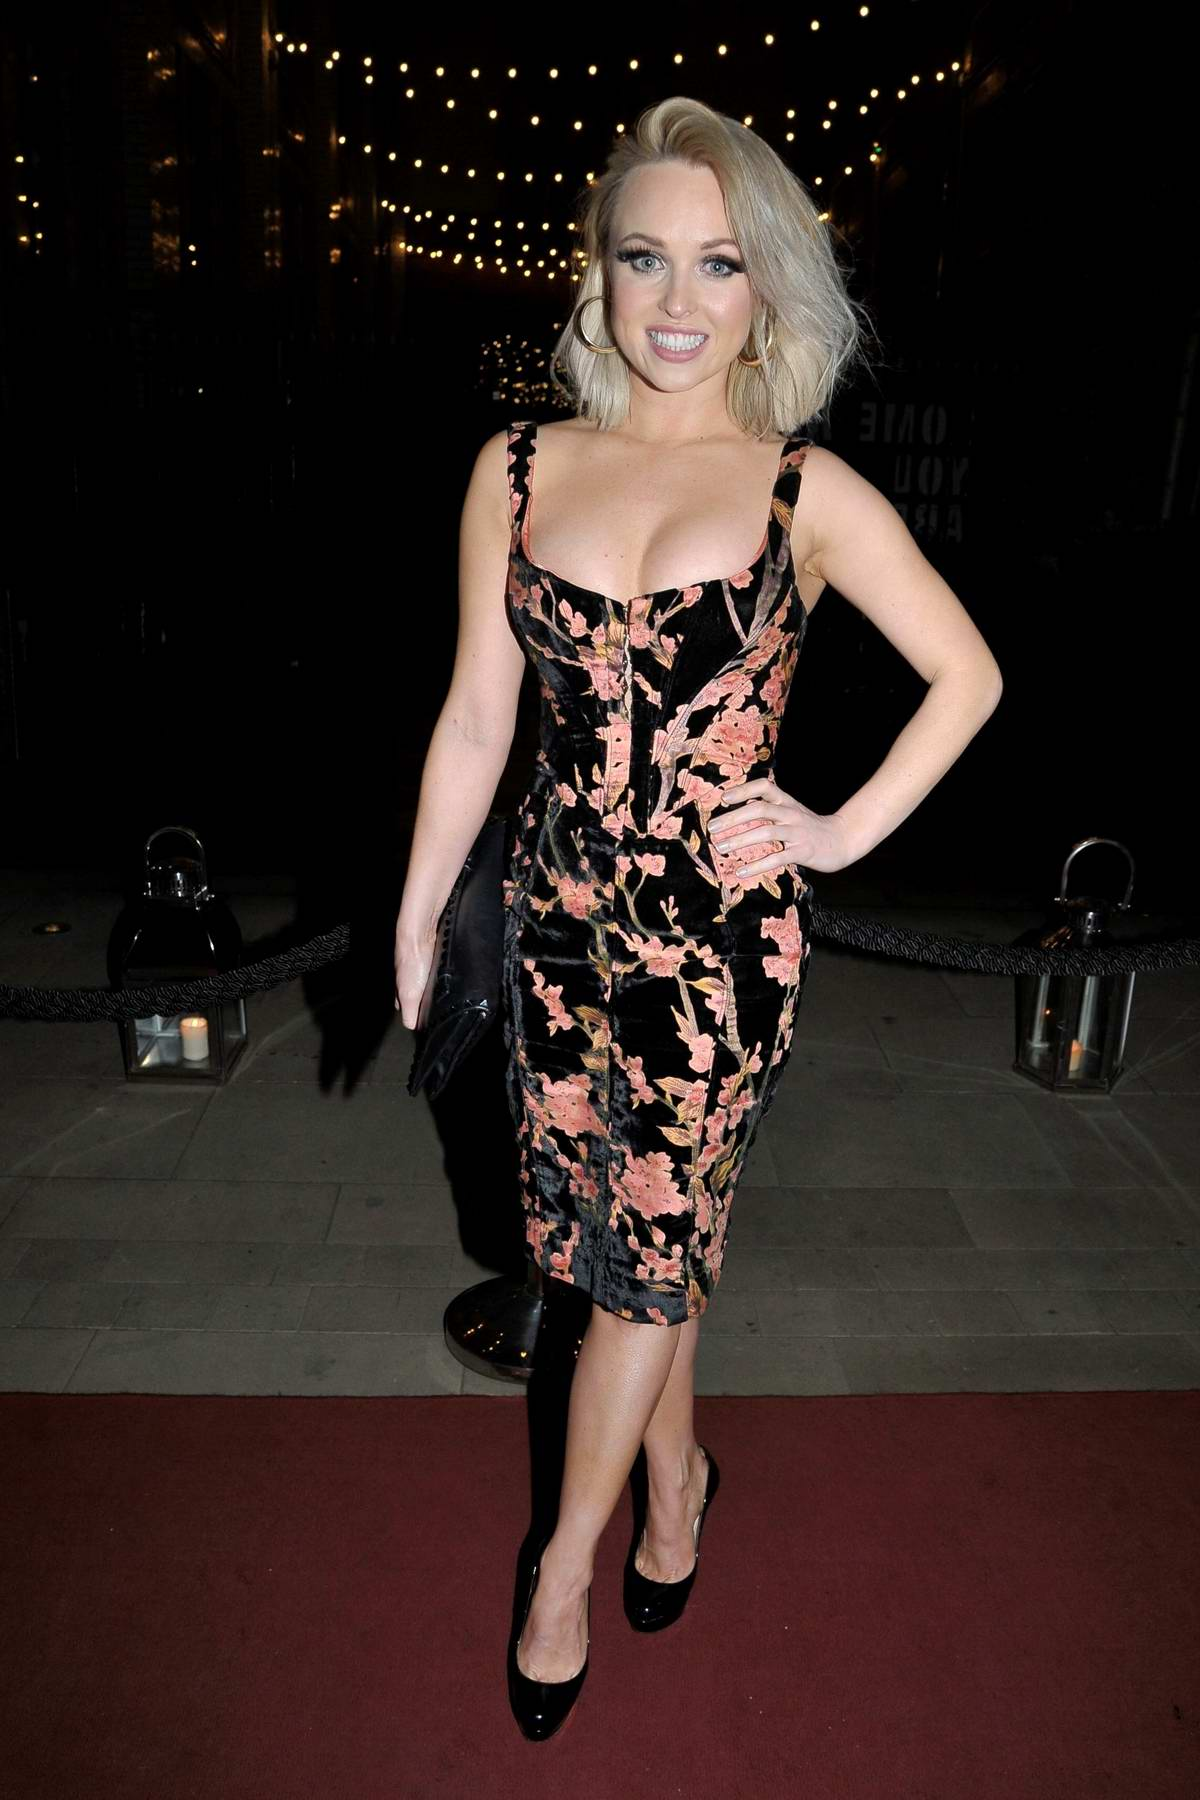 Jorgie Porter attends The Christie Charity Ball at Principal Hotel in Manchester, UK